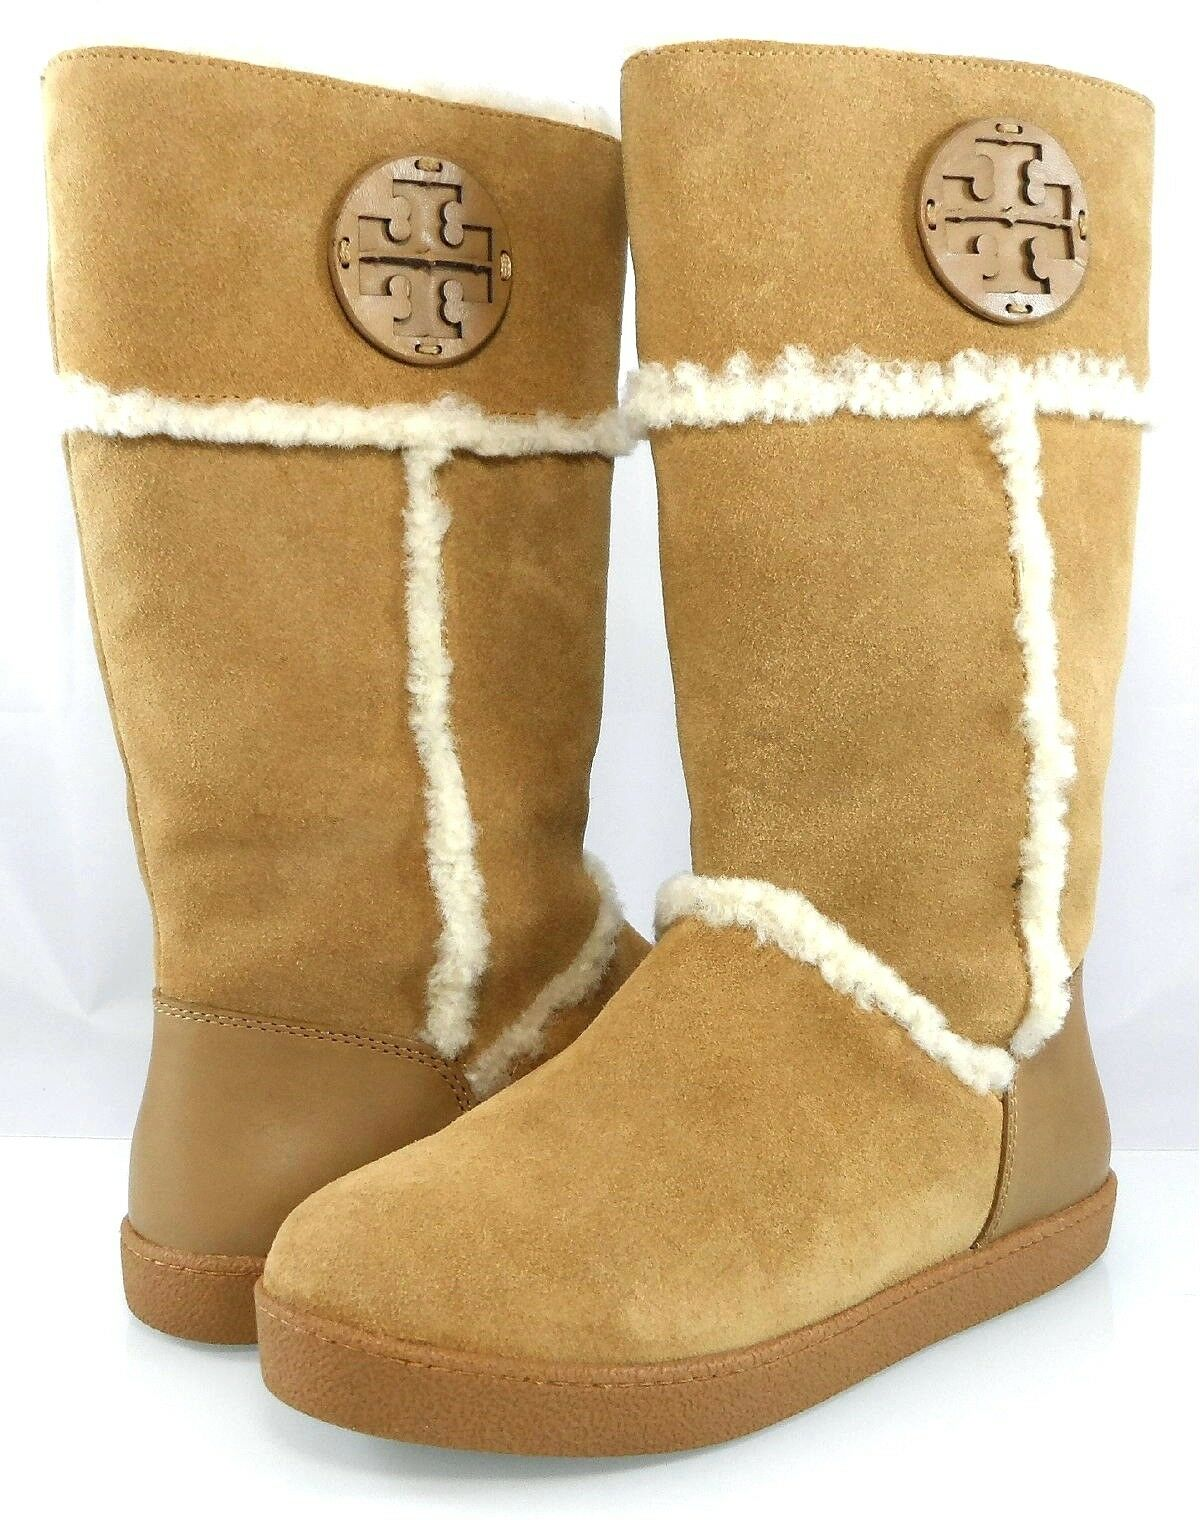 345 TORY BURCH AMELIE SHEARLING BOOTS  PULL ON FLAT WEDGE WARM Women's 6 36